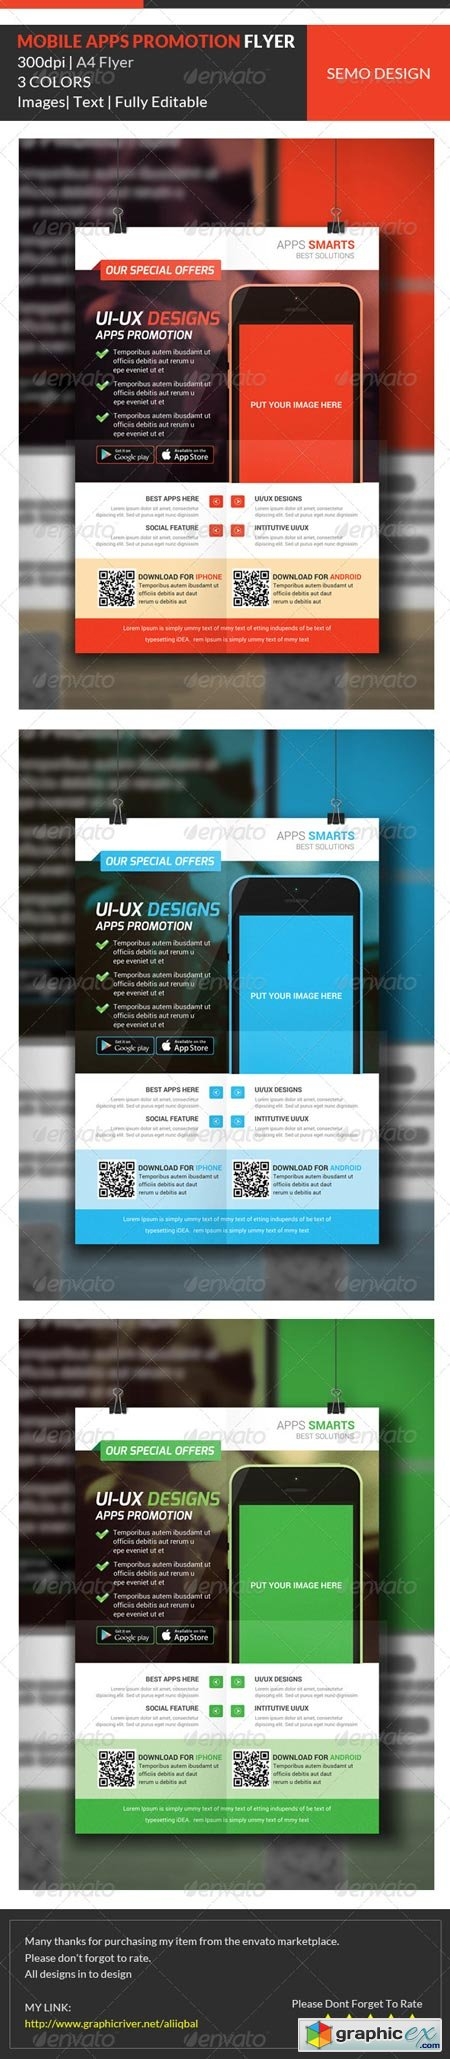 Mobile Apps Promotion Flyer Template 7097184